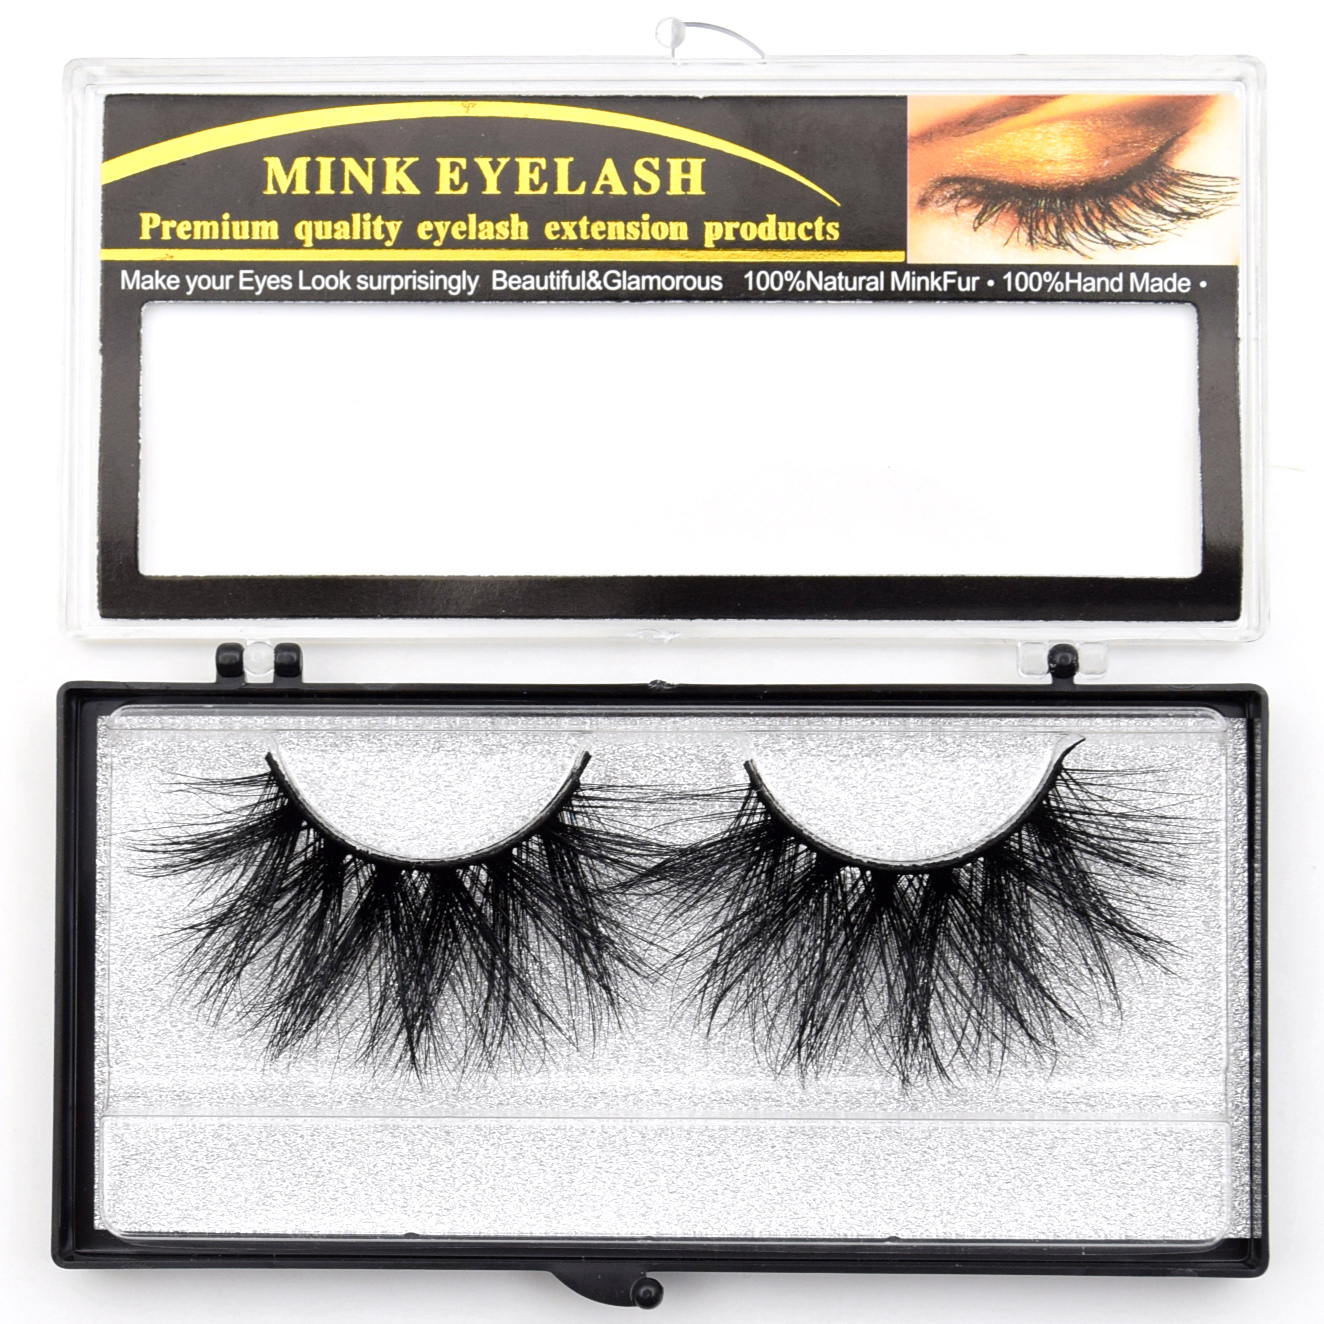 Visofree Eyelashes 25mm Lashes 3D Mink Lashes 27mm Lashes Strip Lashes Handcrafted 100% Cruelty-free False Eyelashes Makeup E58